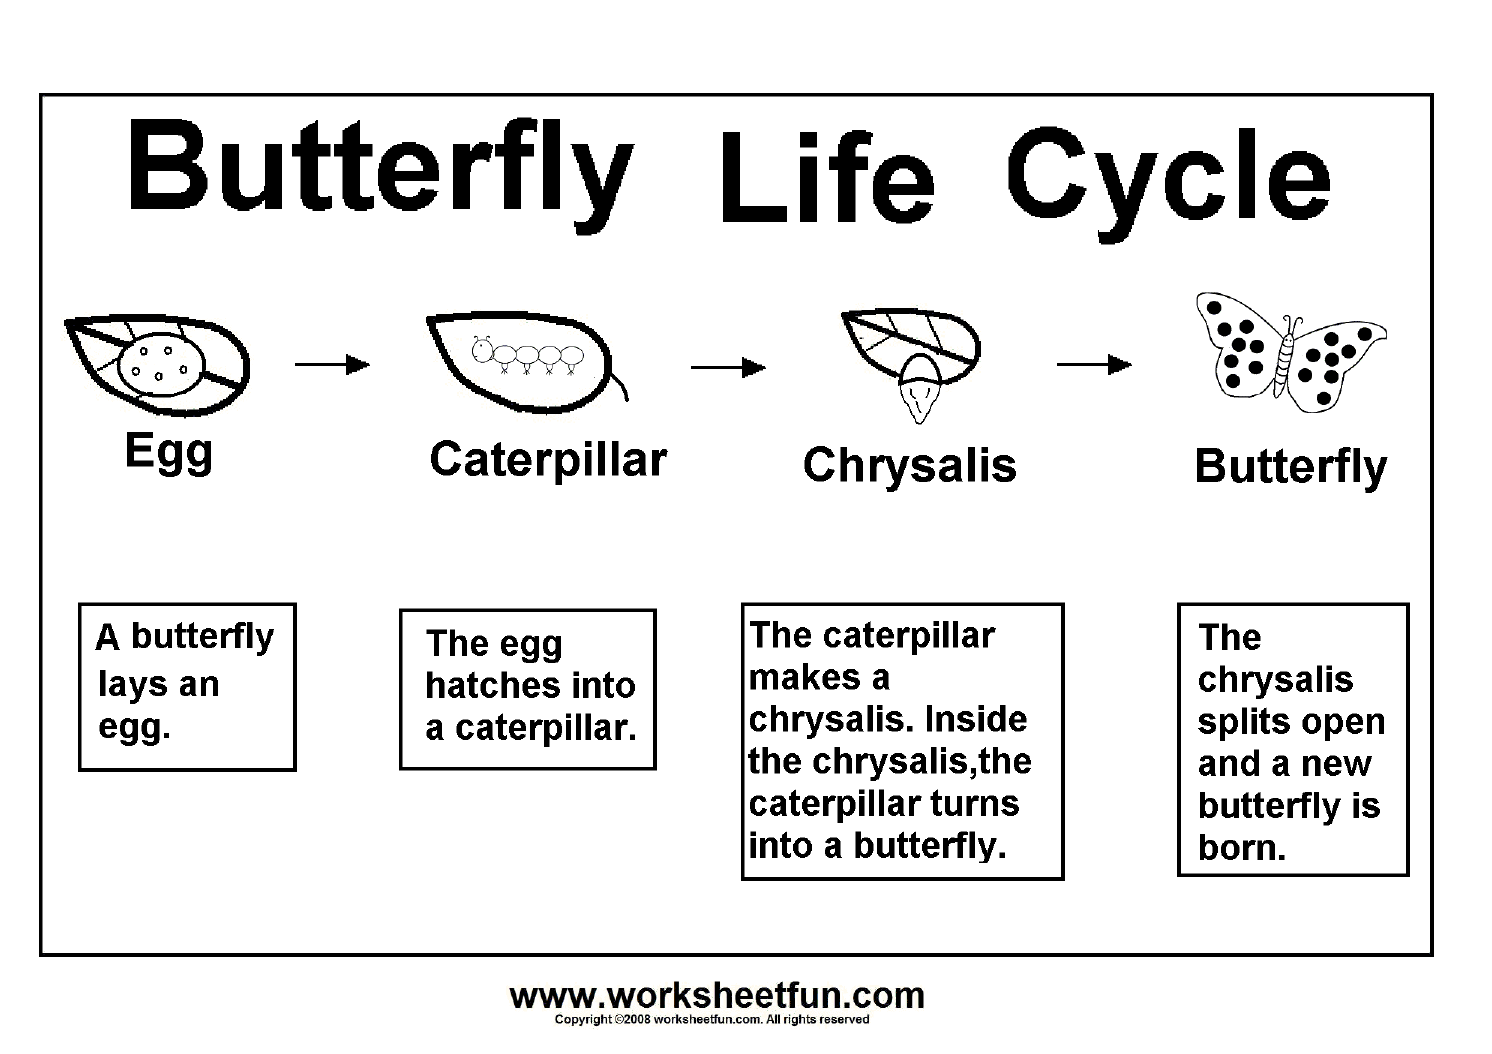 Butterfly life cycle   Printable Worksheets   Pinterest ...